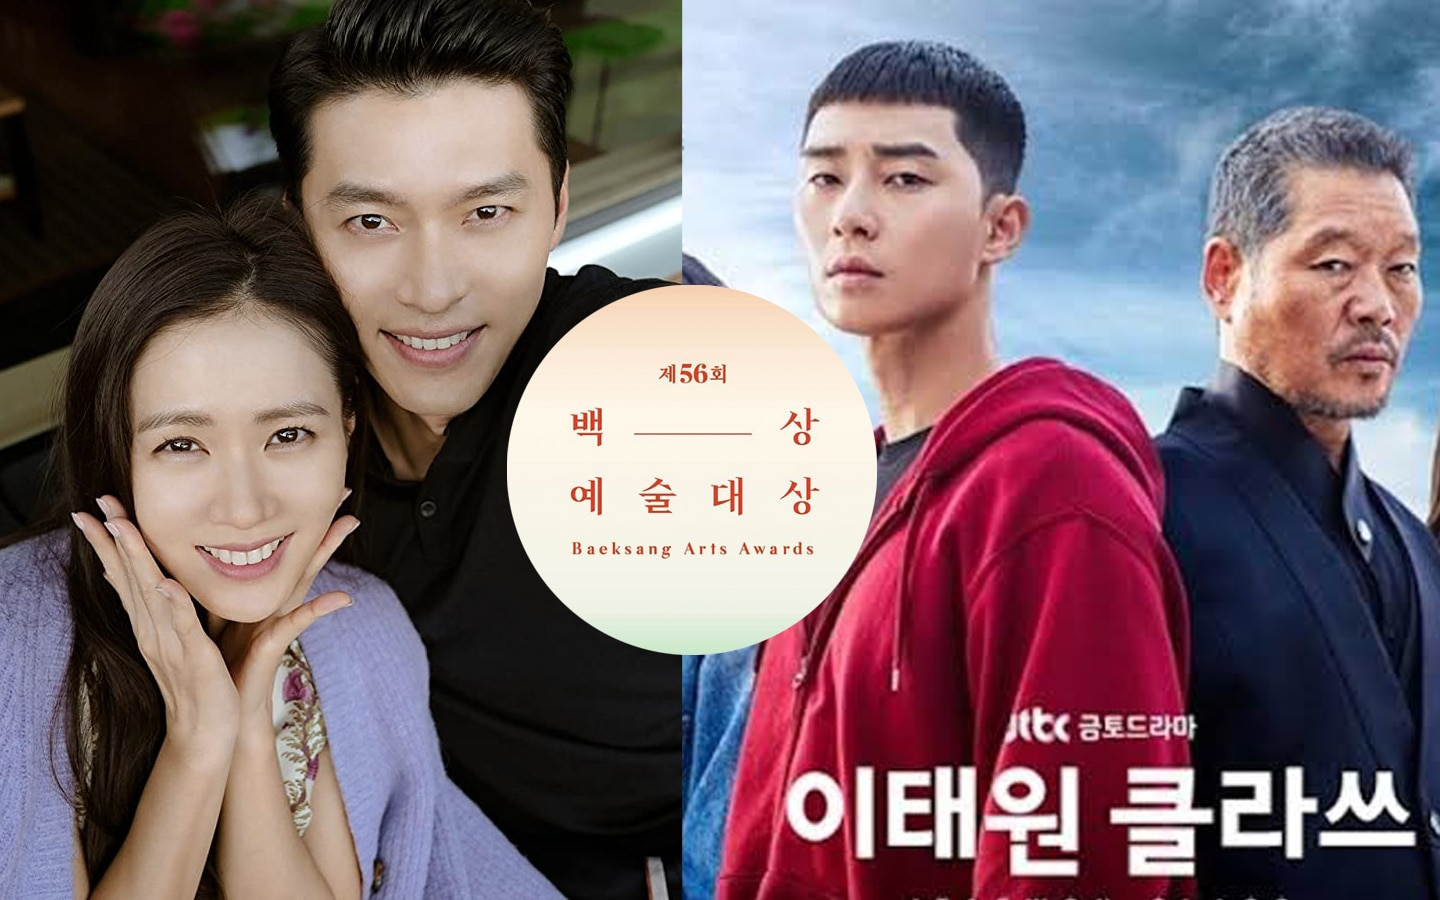 Here Are Our Predictions For The 56th Baeksang Arts Awards